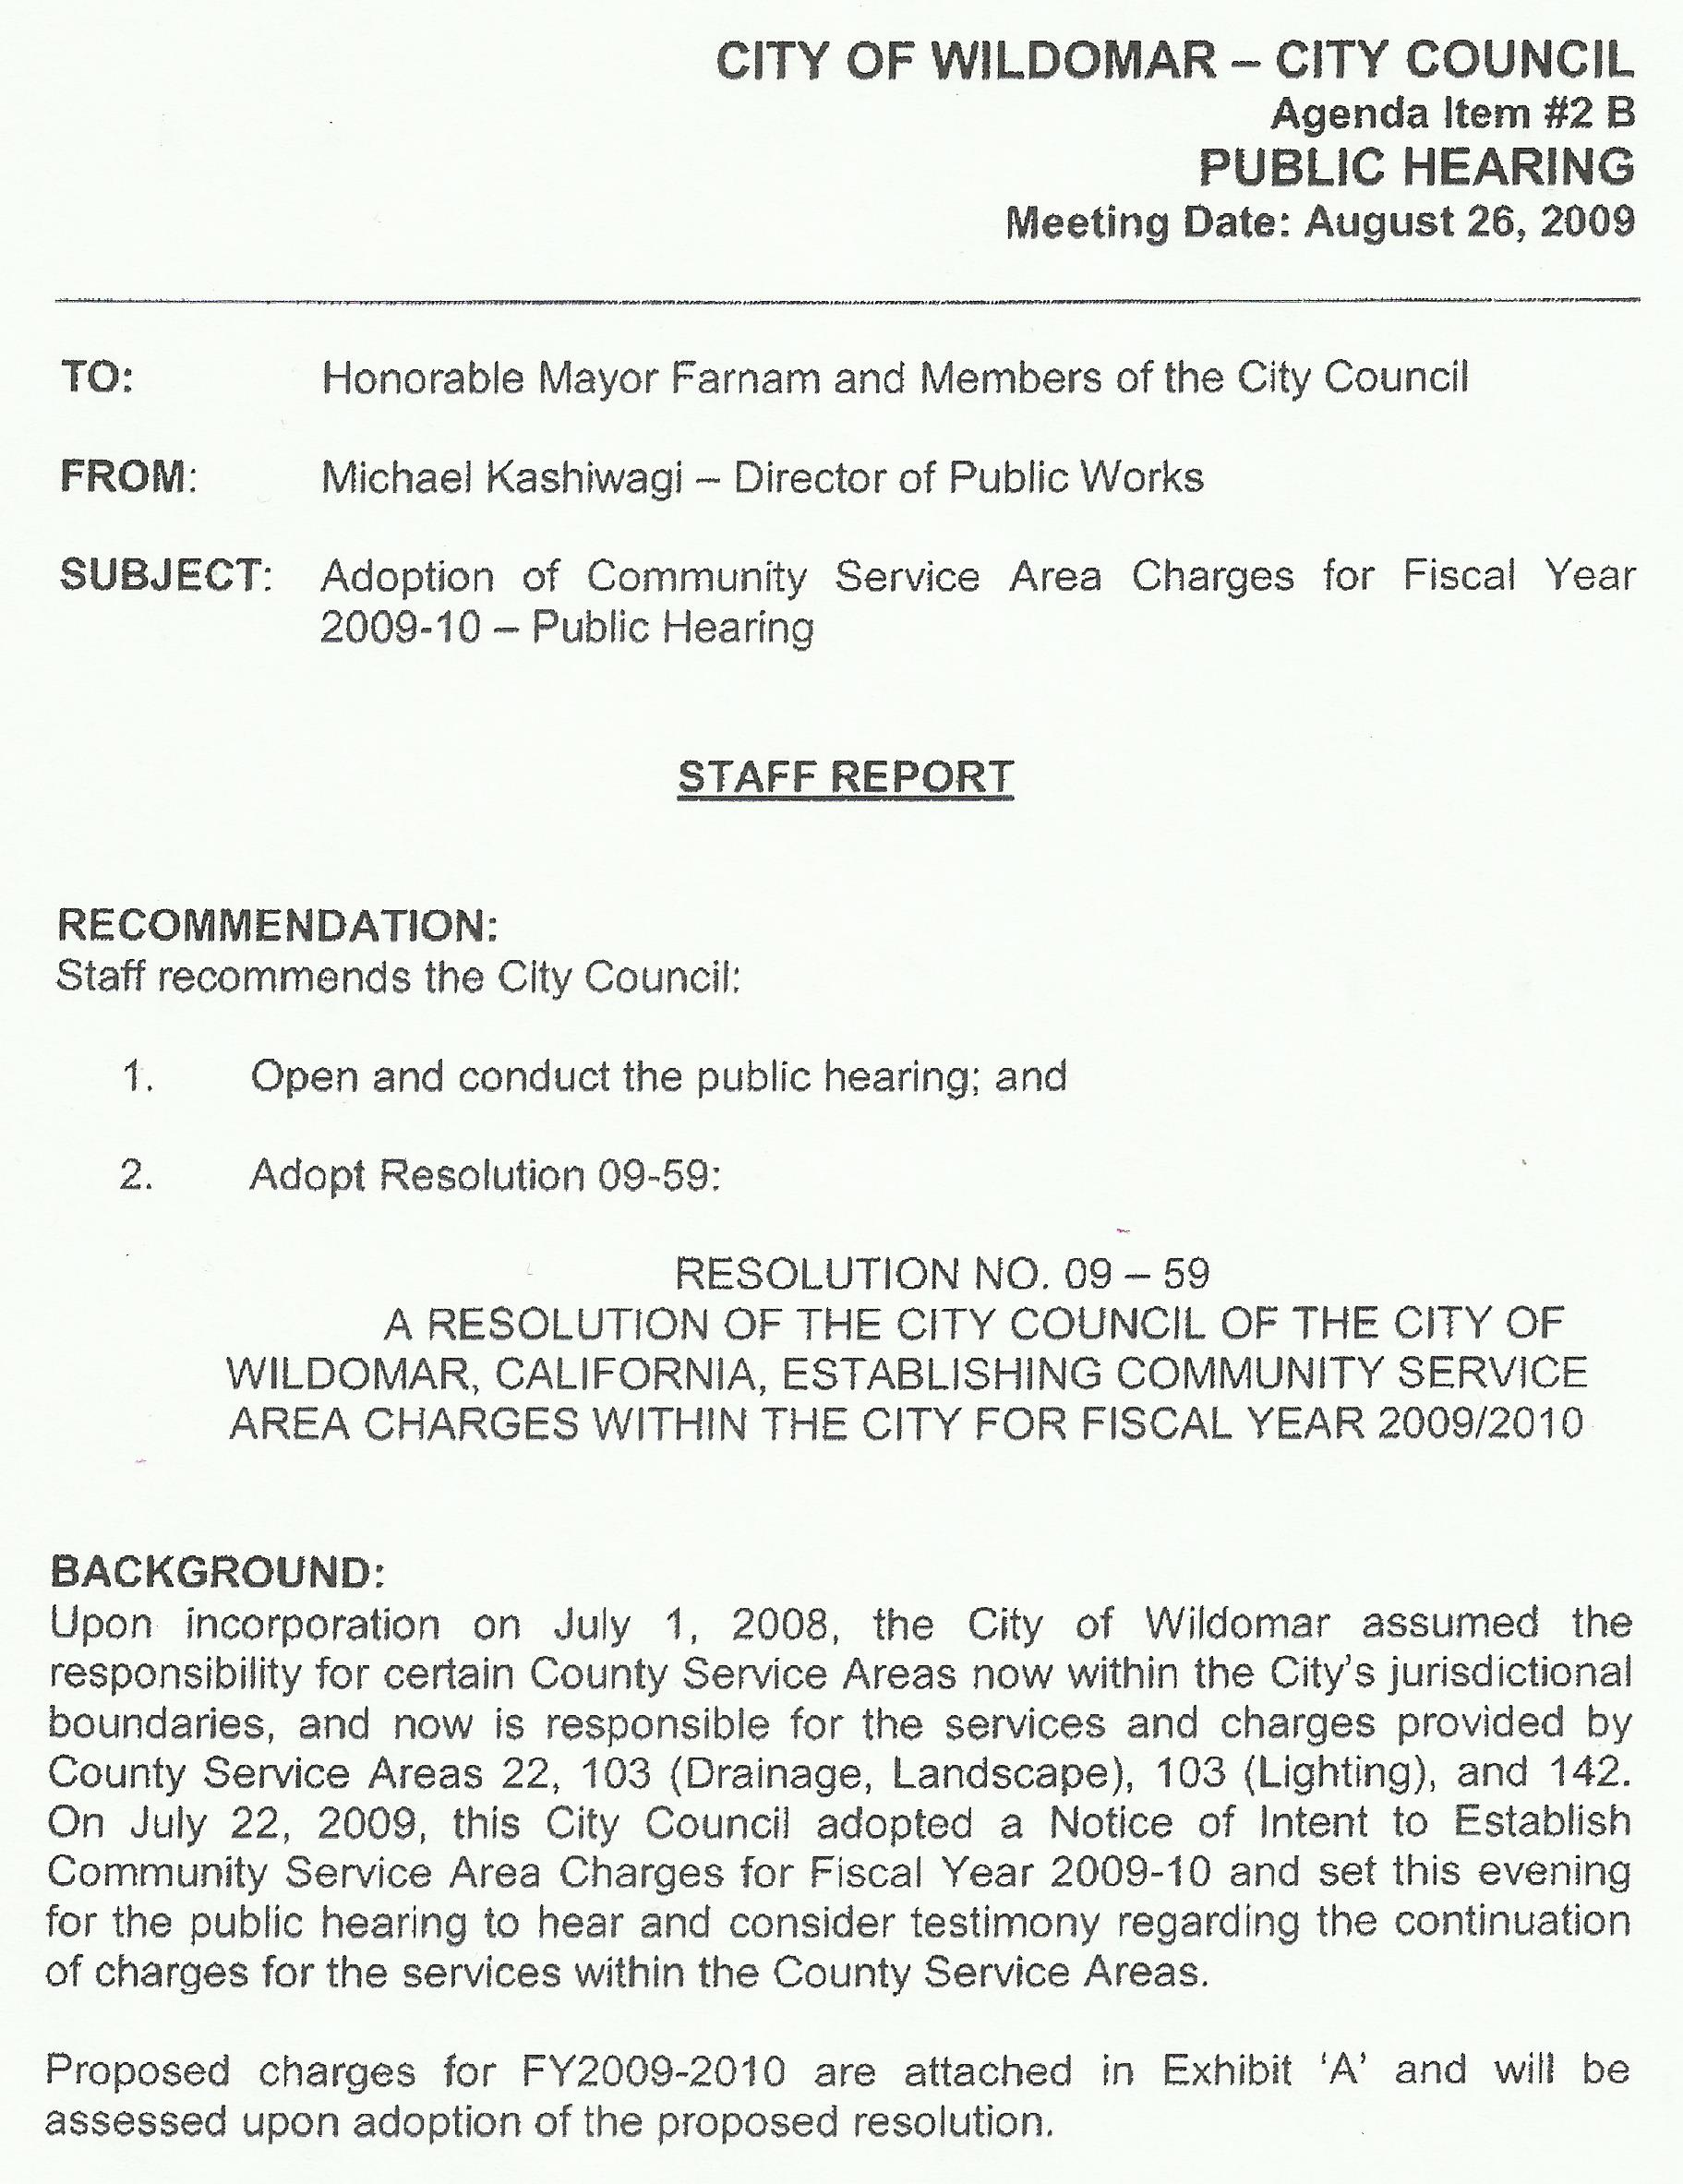 Resolution 09 59 That Established The Charges For CSA 103 Drainage/Landscape